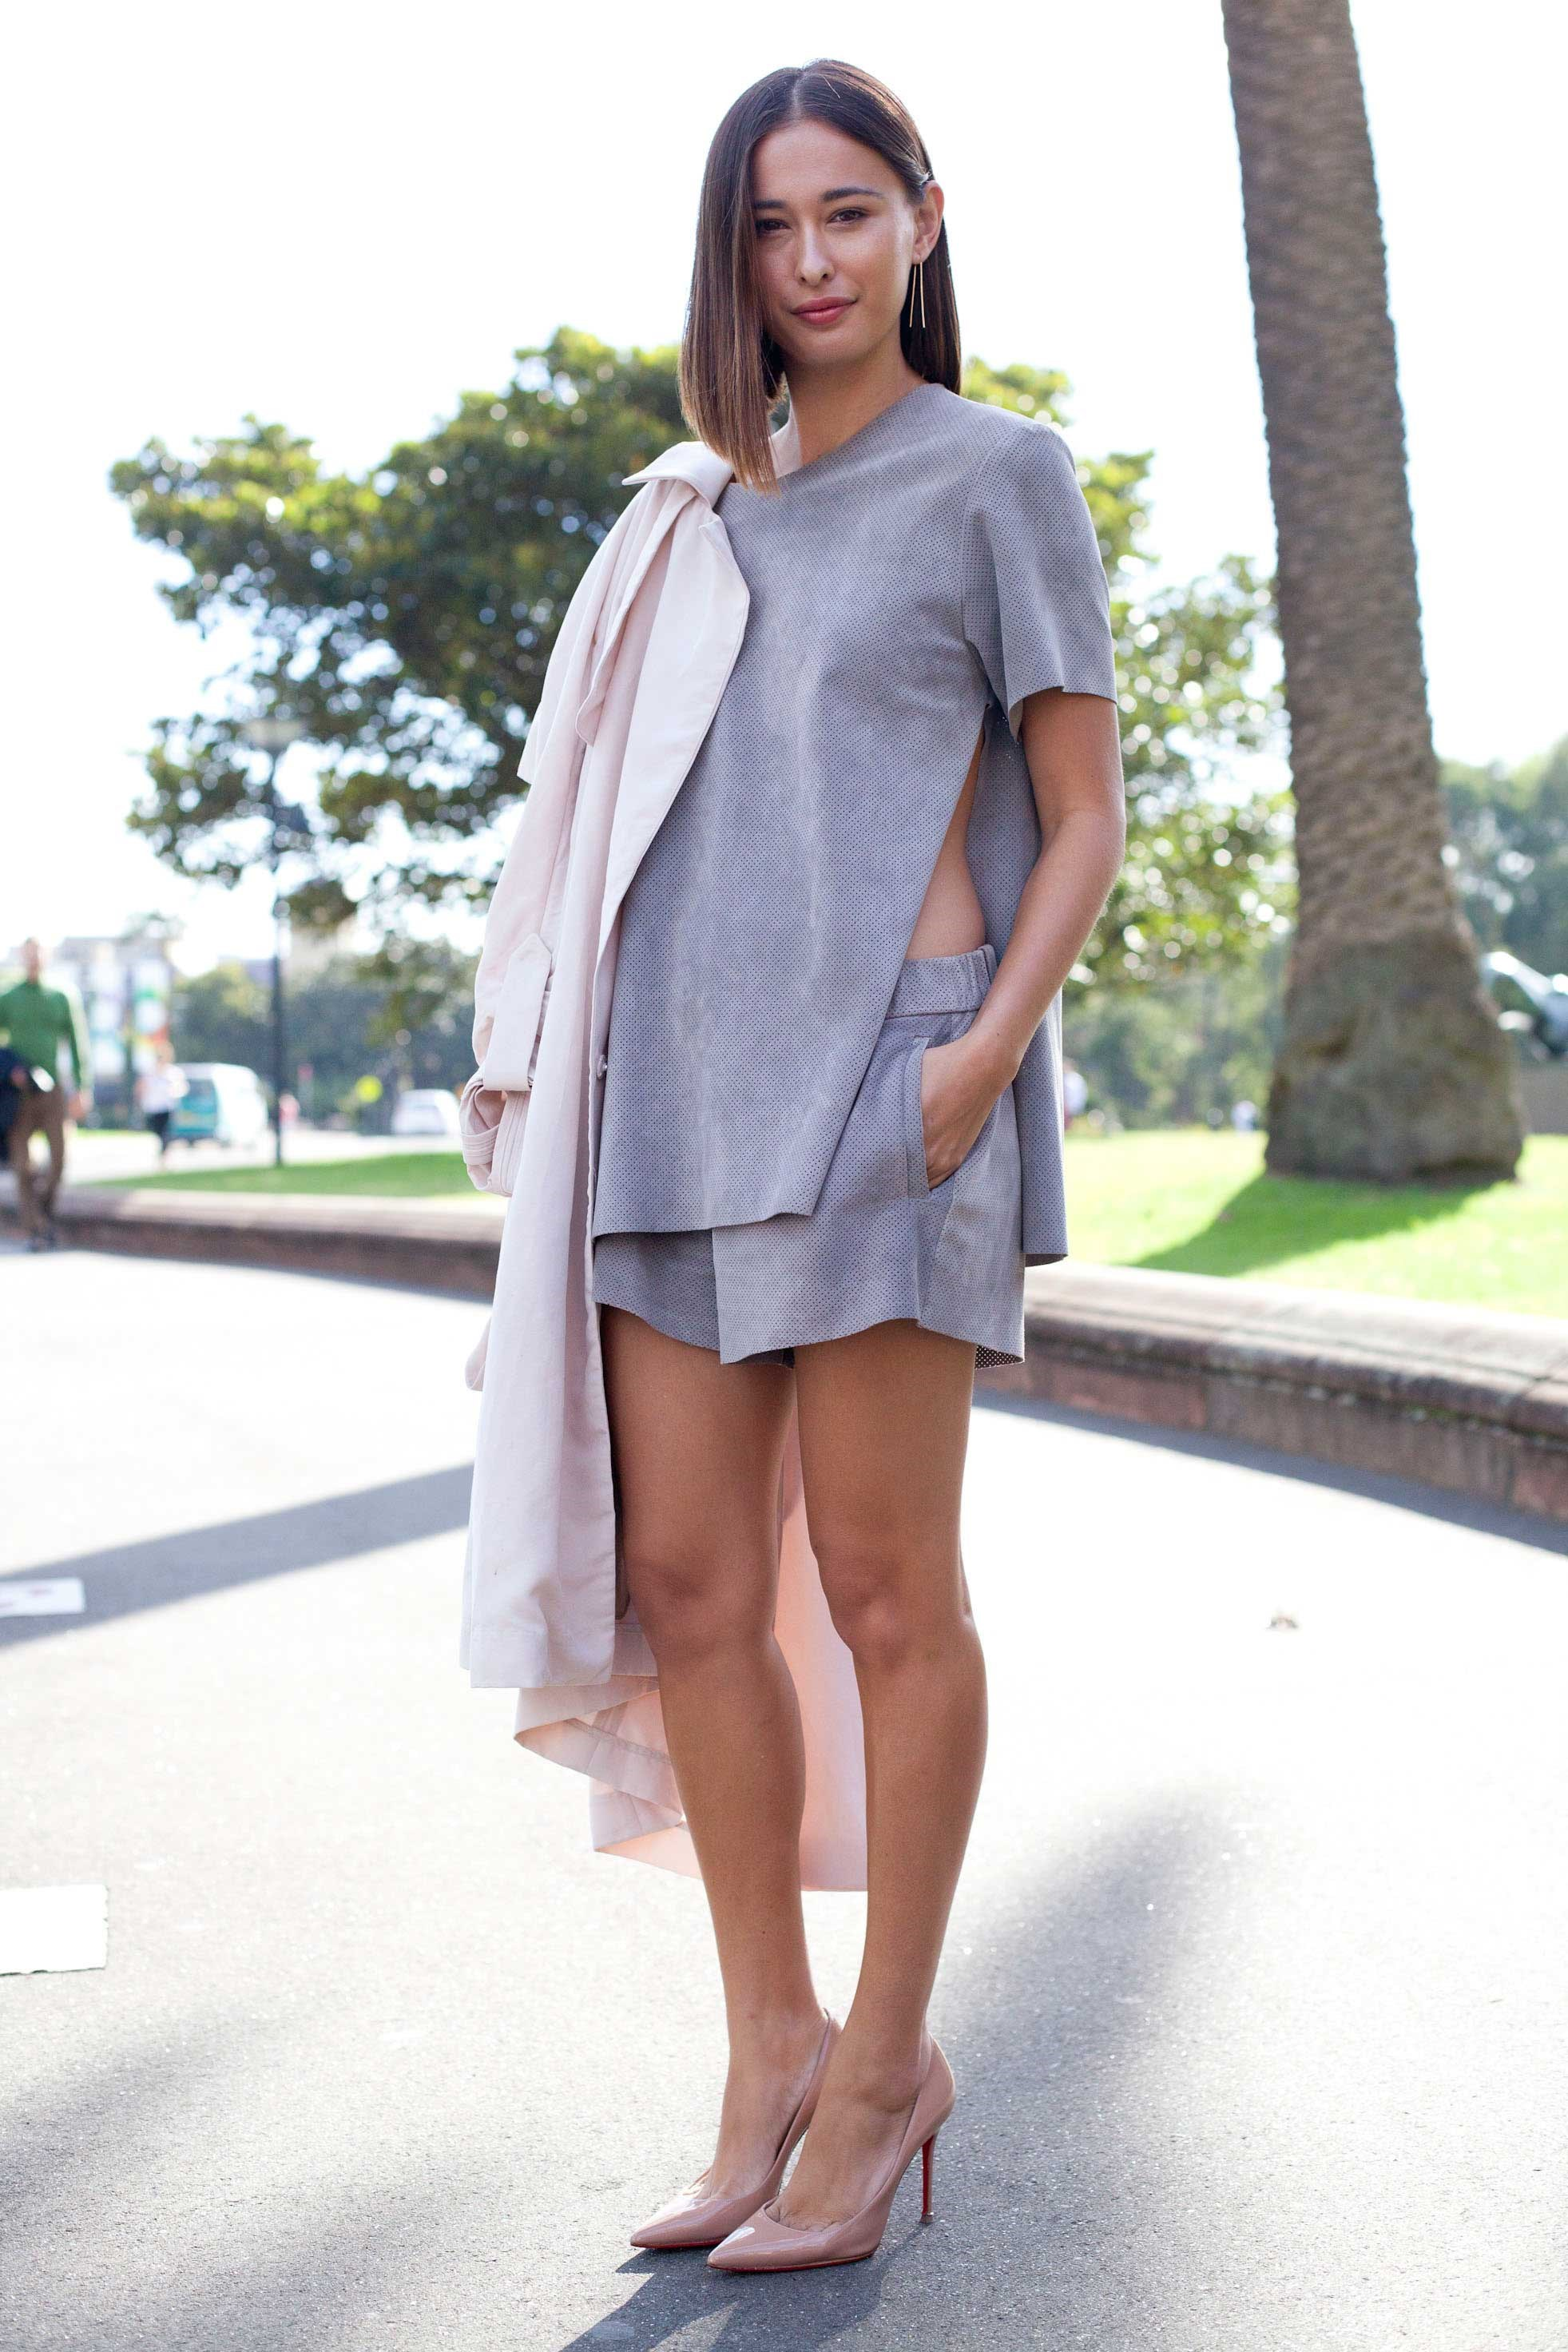 Grey-on-grey is totally a thing, especially when it's broken up with flashes of peach. Just ask Eleanor Pendleton.